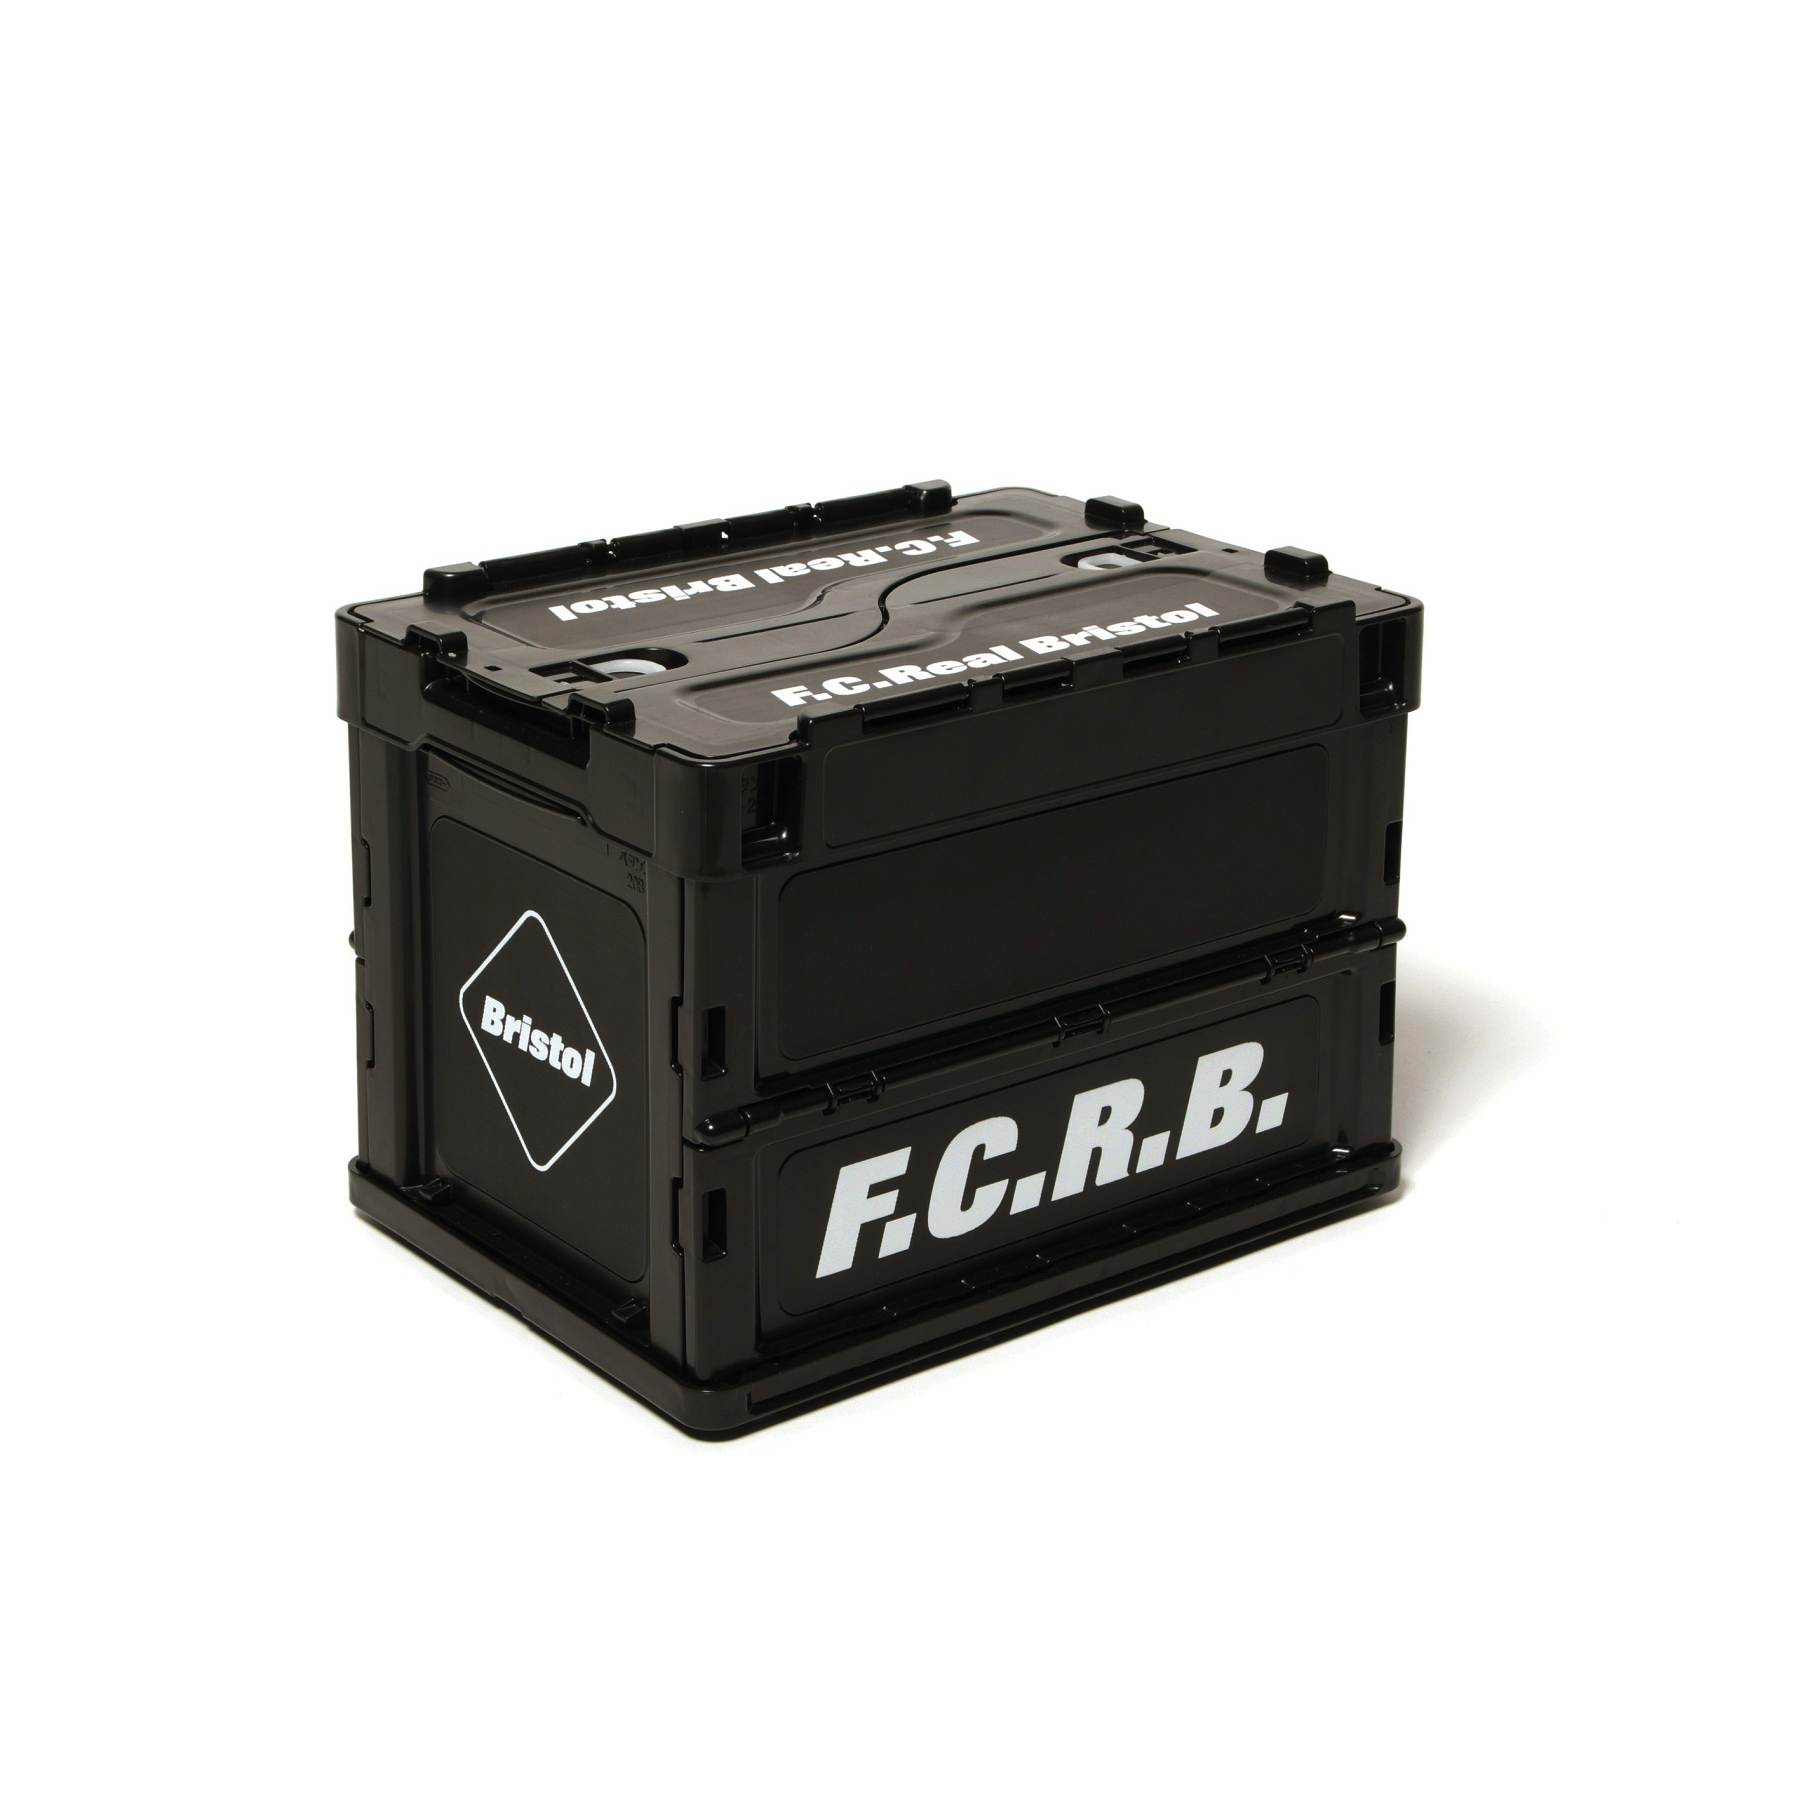 F.C.Real Bristol / SMALL FOLDABLE CONTAINER (black)